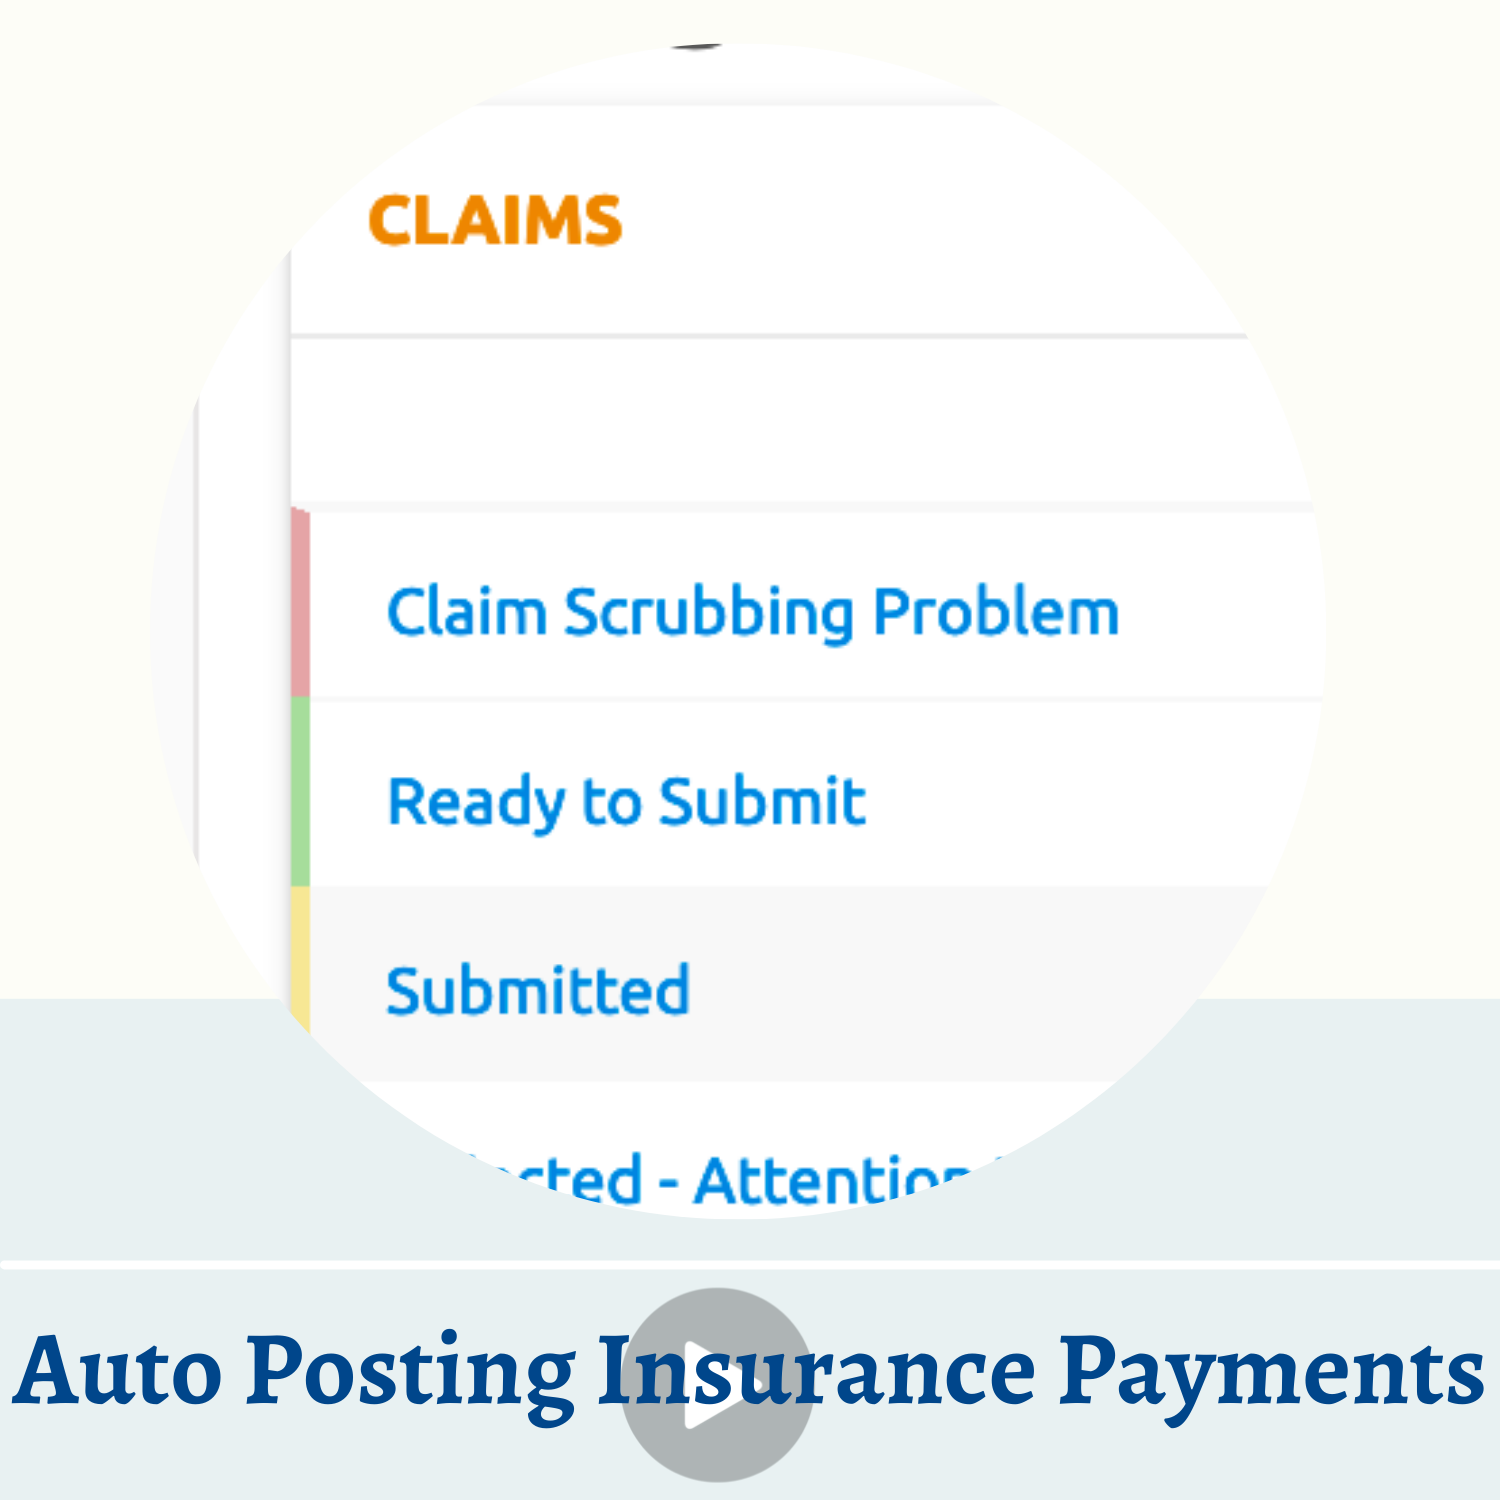 Auto Posting Insurance Payments